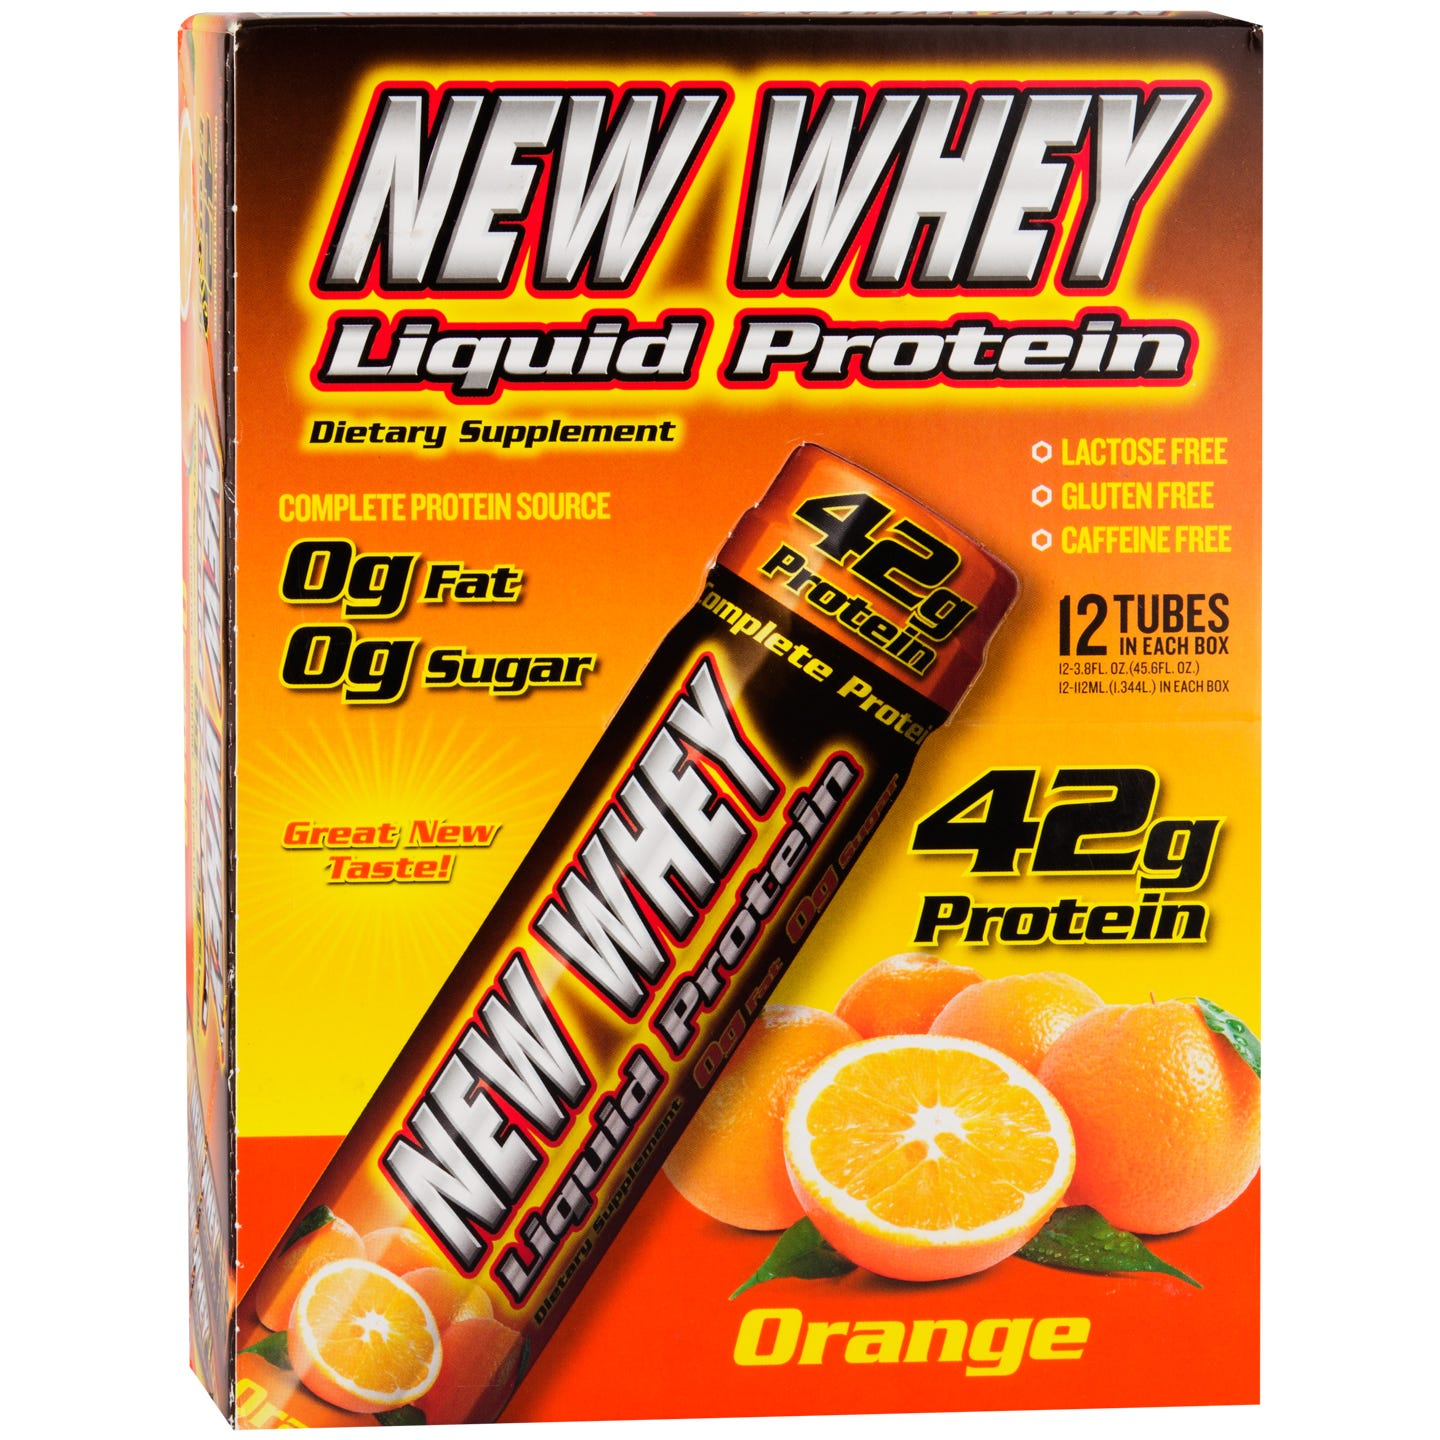 Liquid Protein 42g Orange (12 ct) - New Whey Liquid Protein - Rapid Diet Weight Loss Products Shop